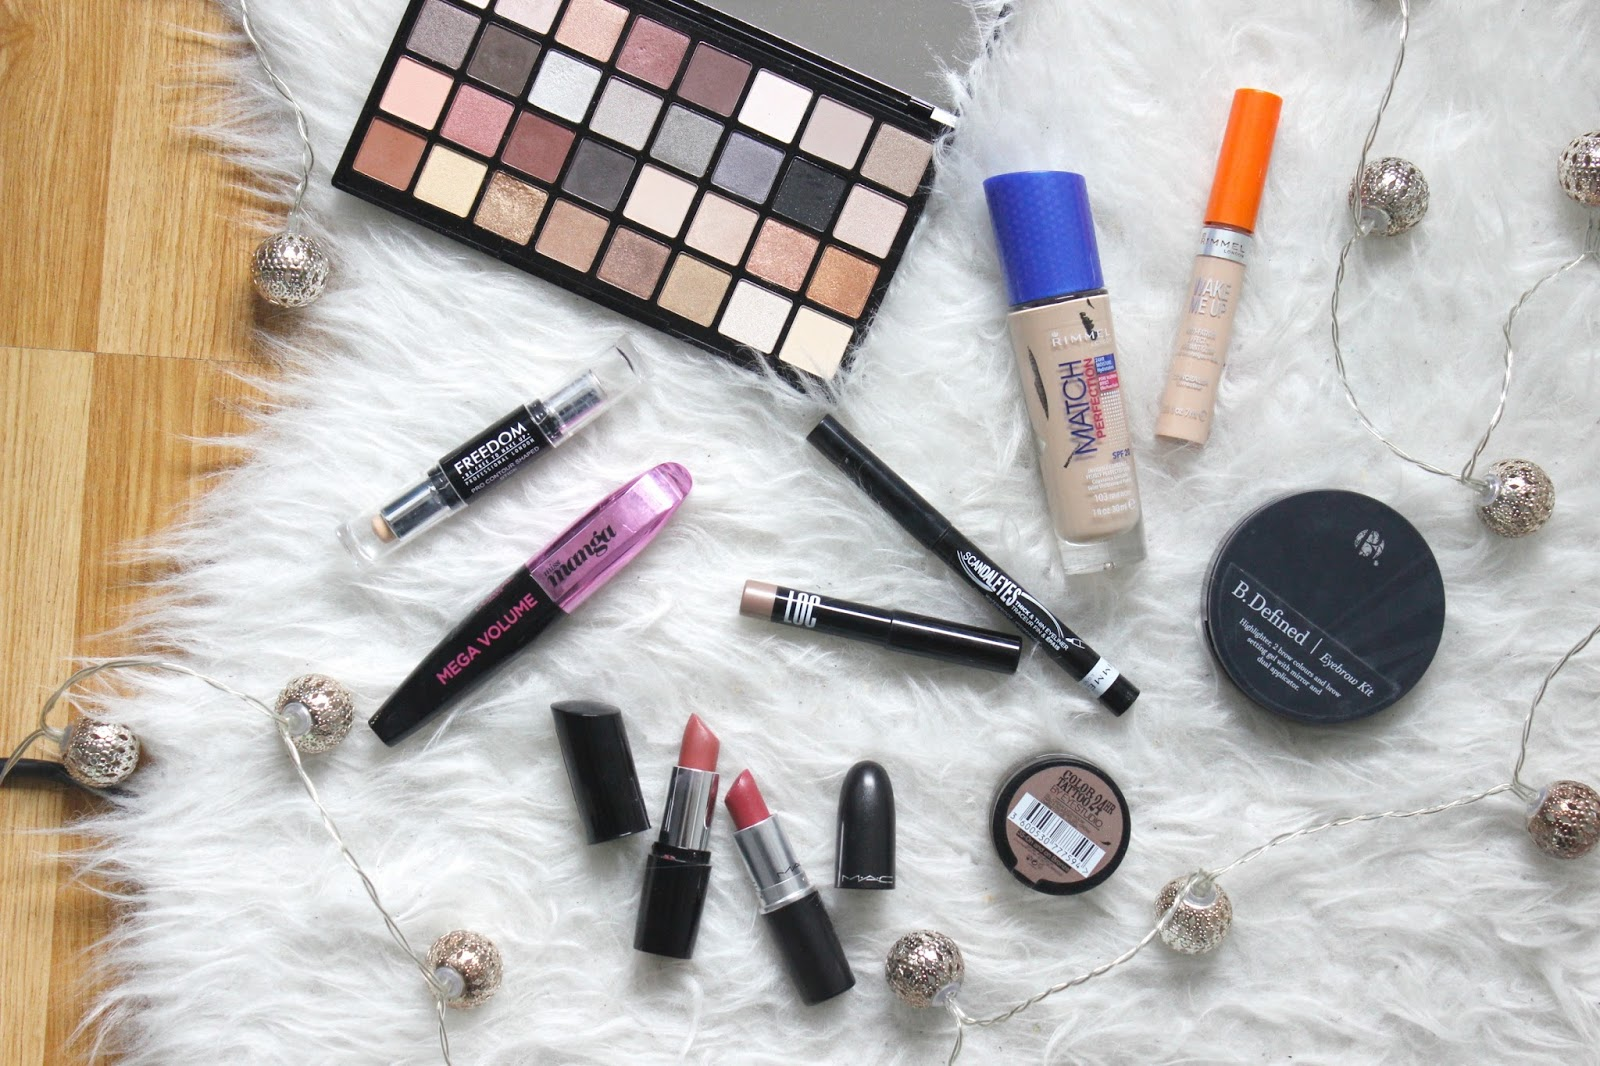 See The Stars - Everyday makeup